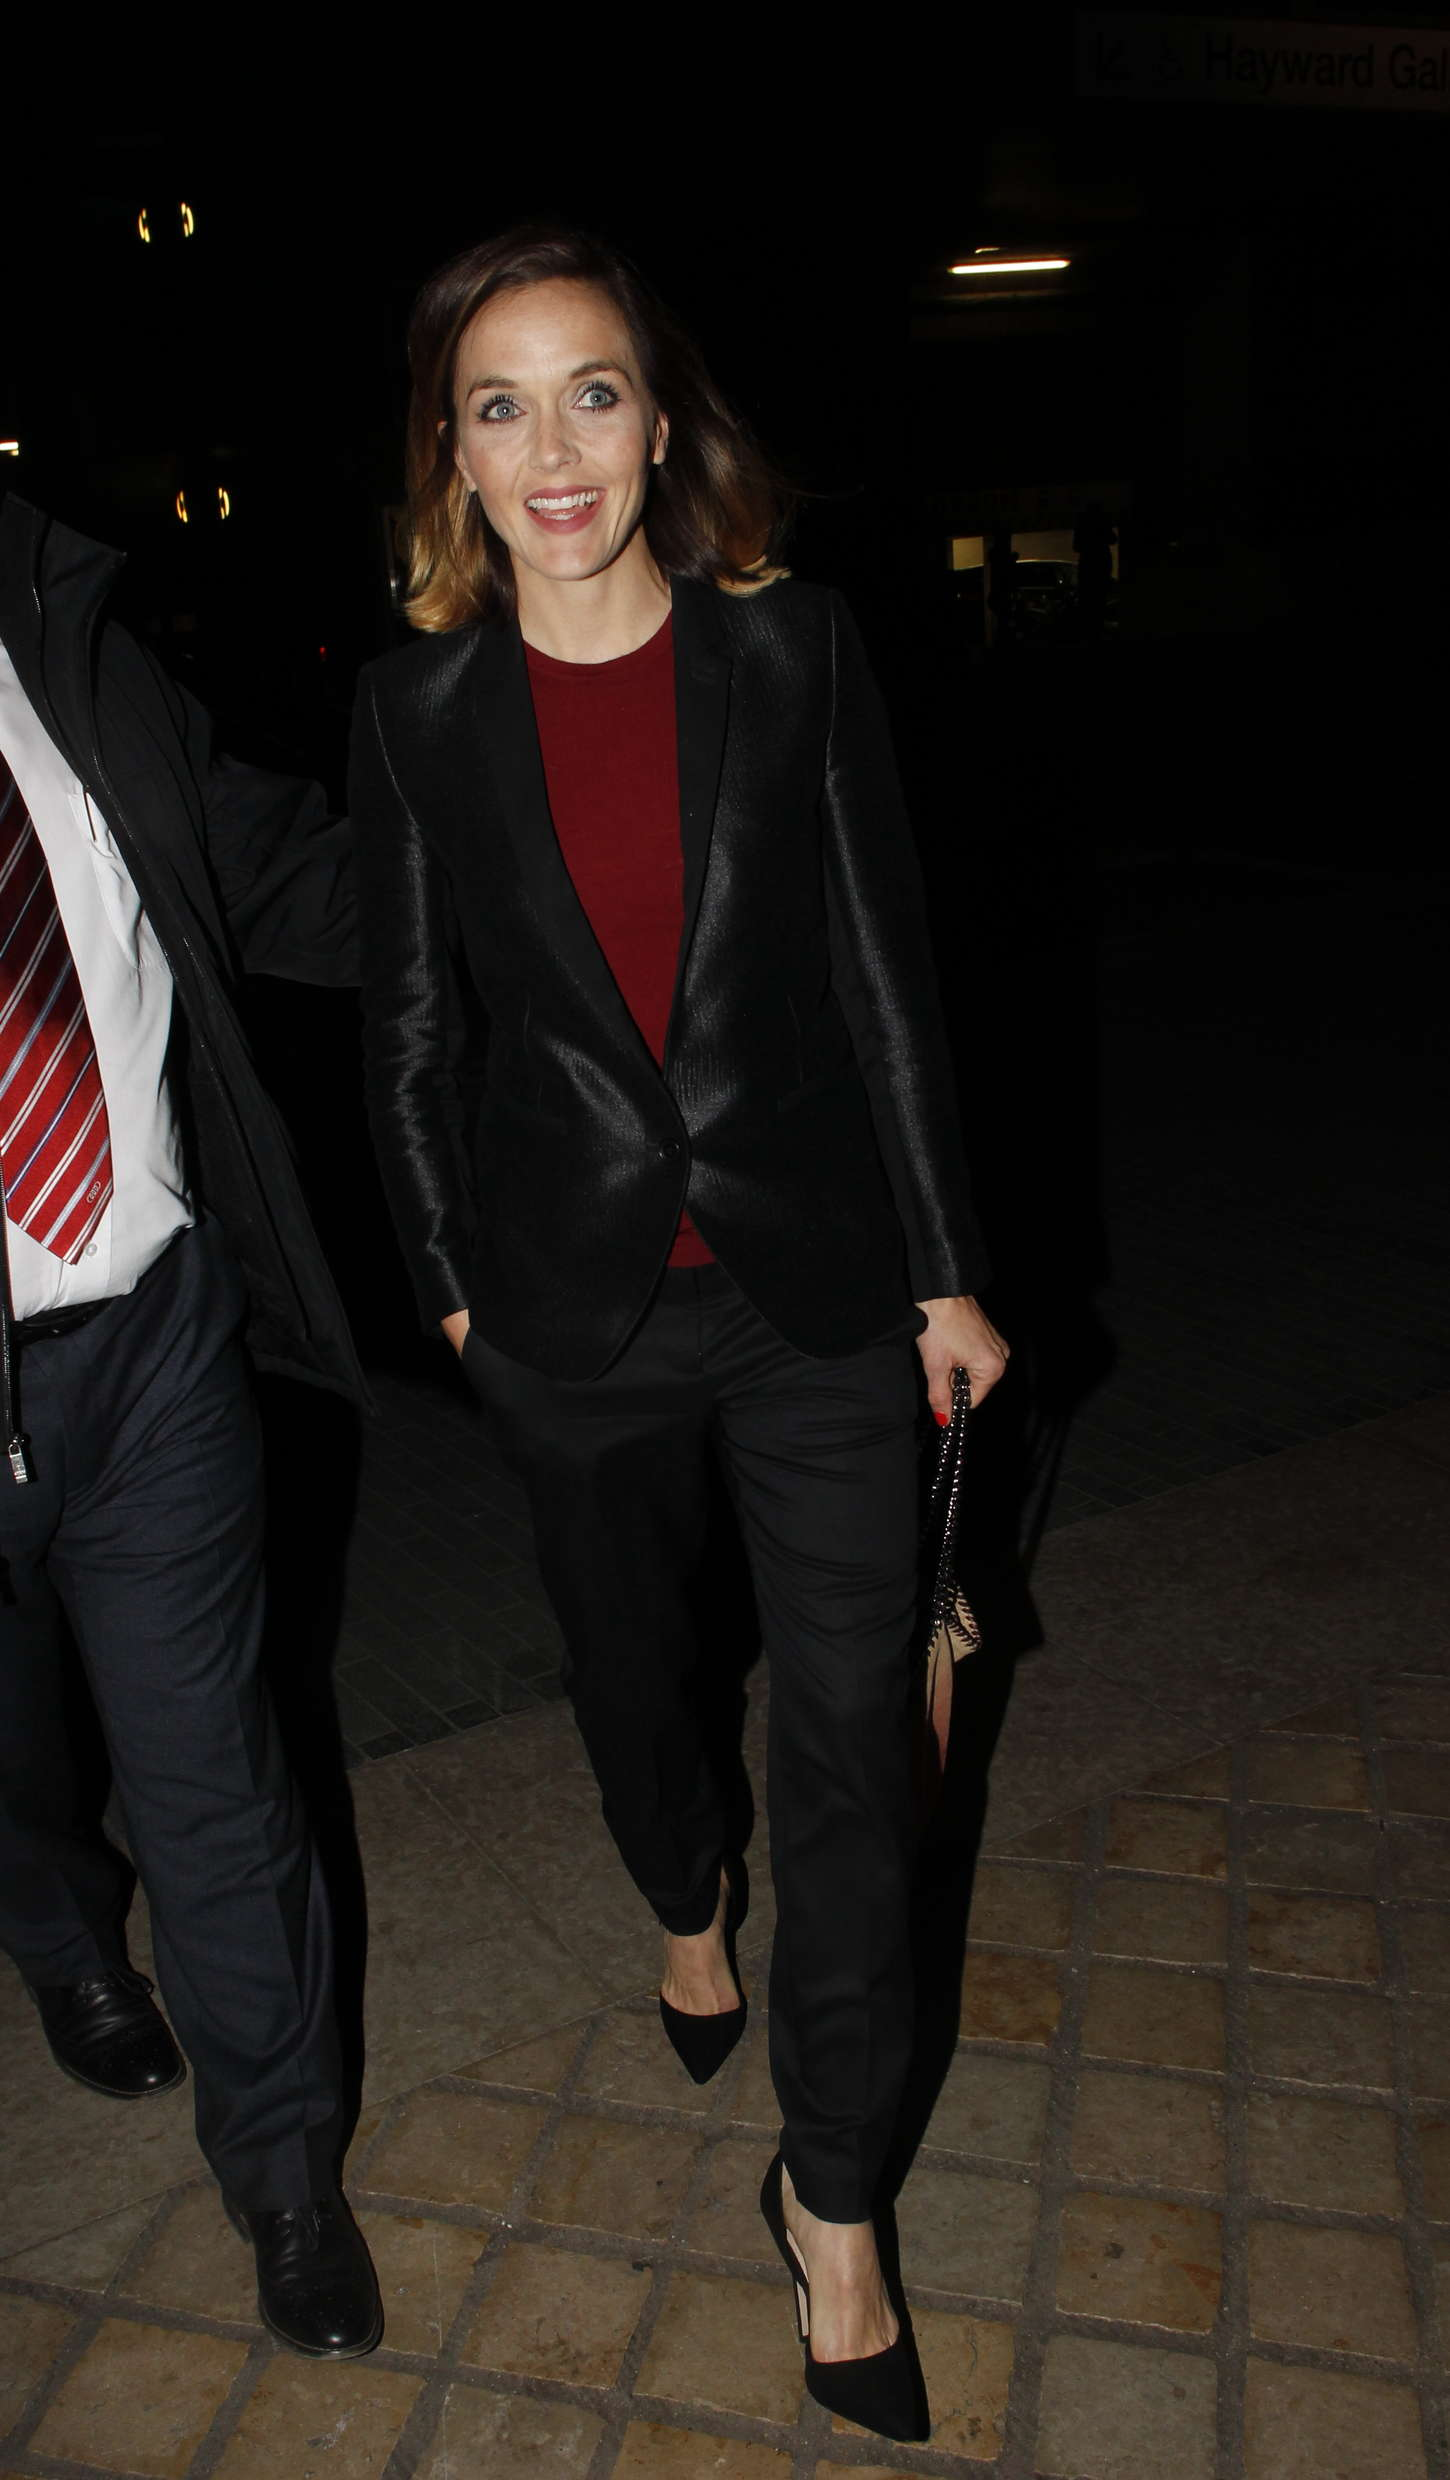 Victoria Pendleton Red Women Of The Year Awards in London